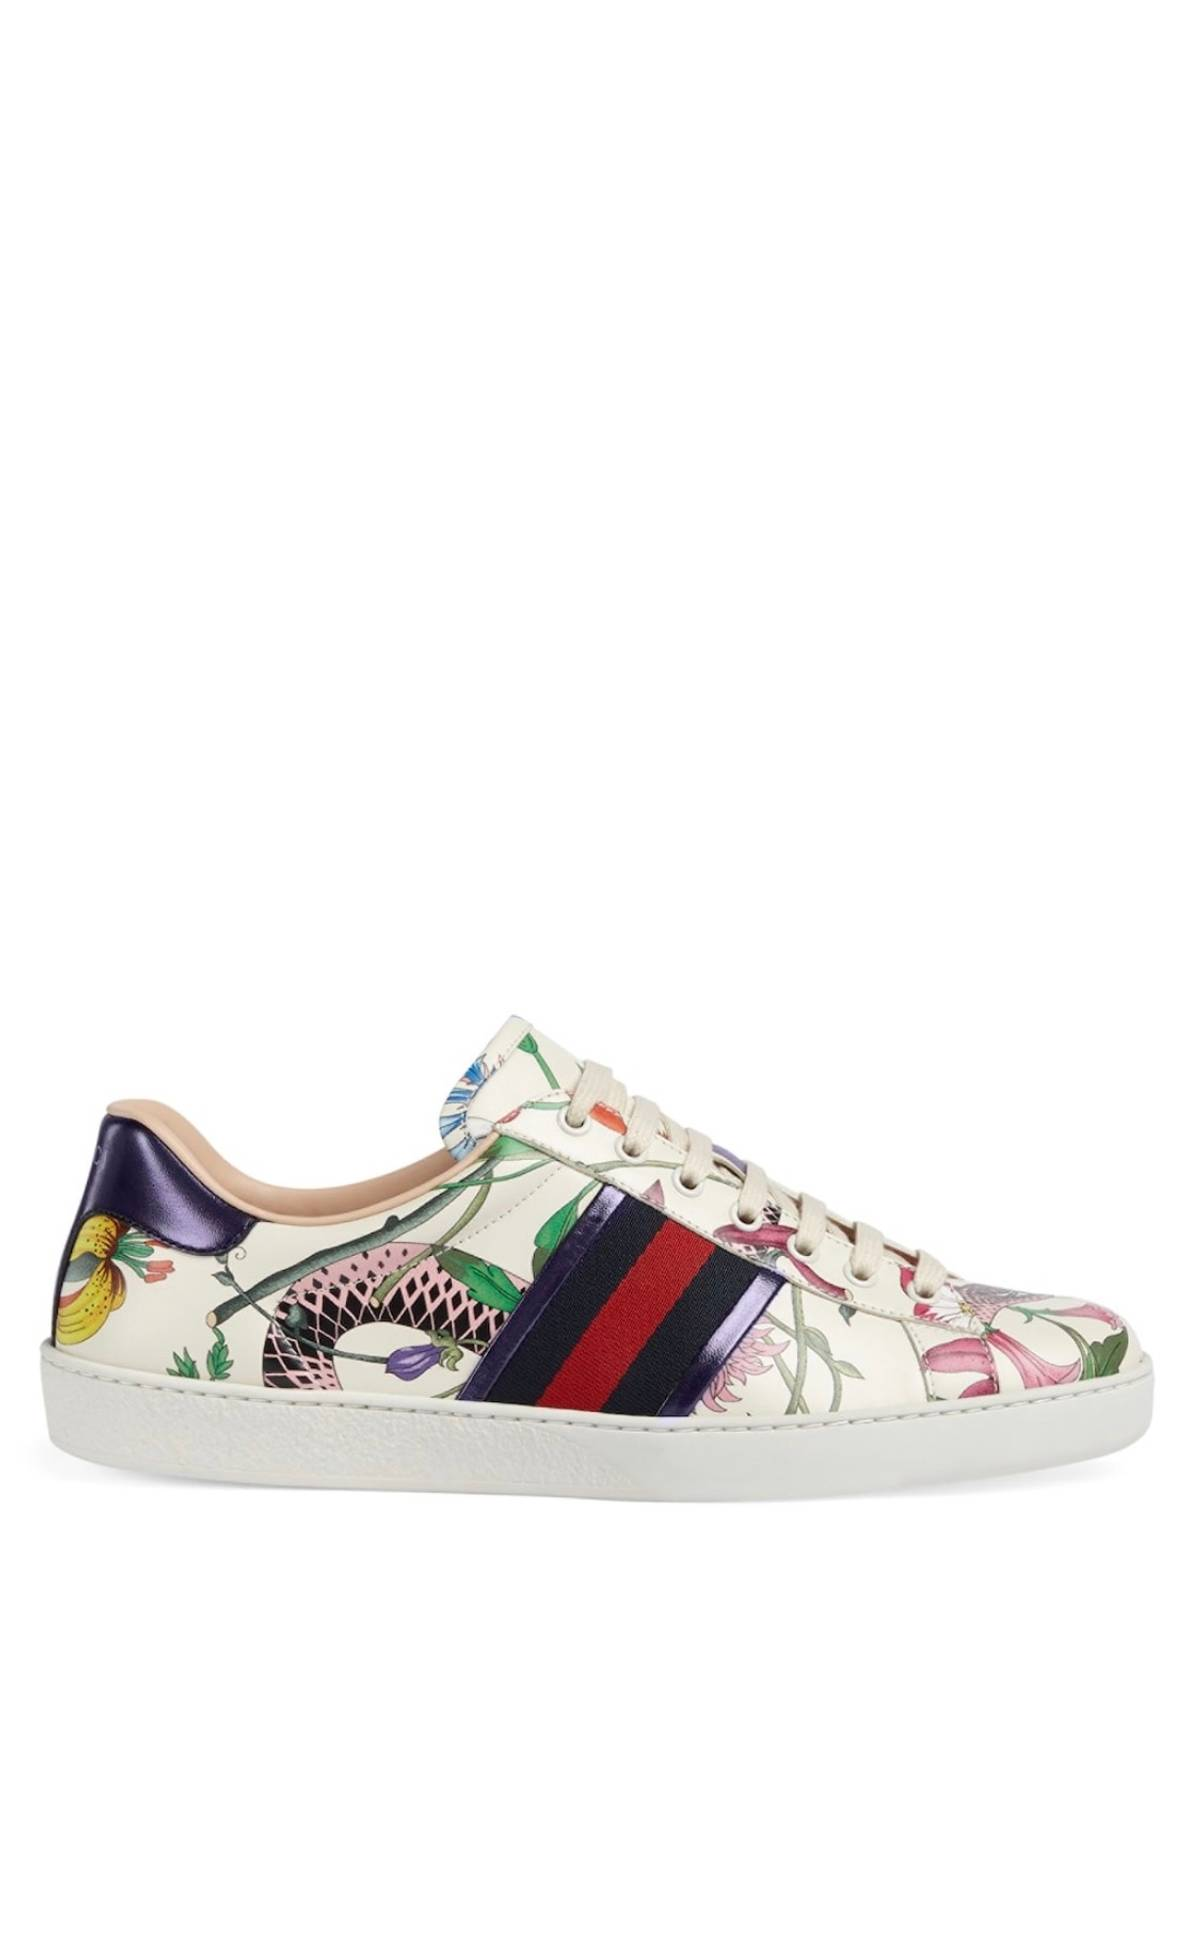 745bb6a360d Gucci Gucci Flora Snake Ace Sneakers